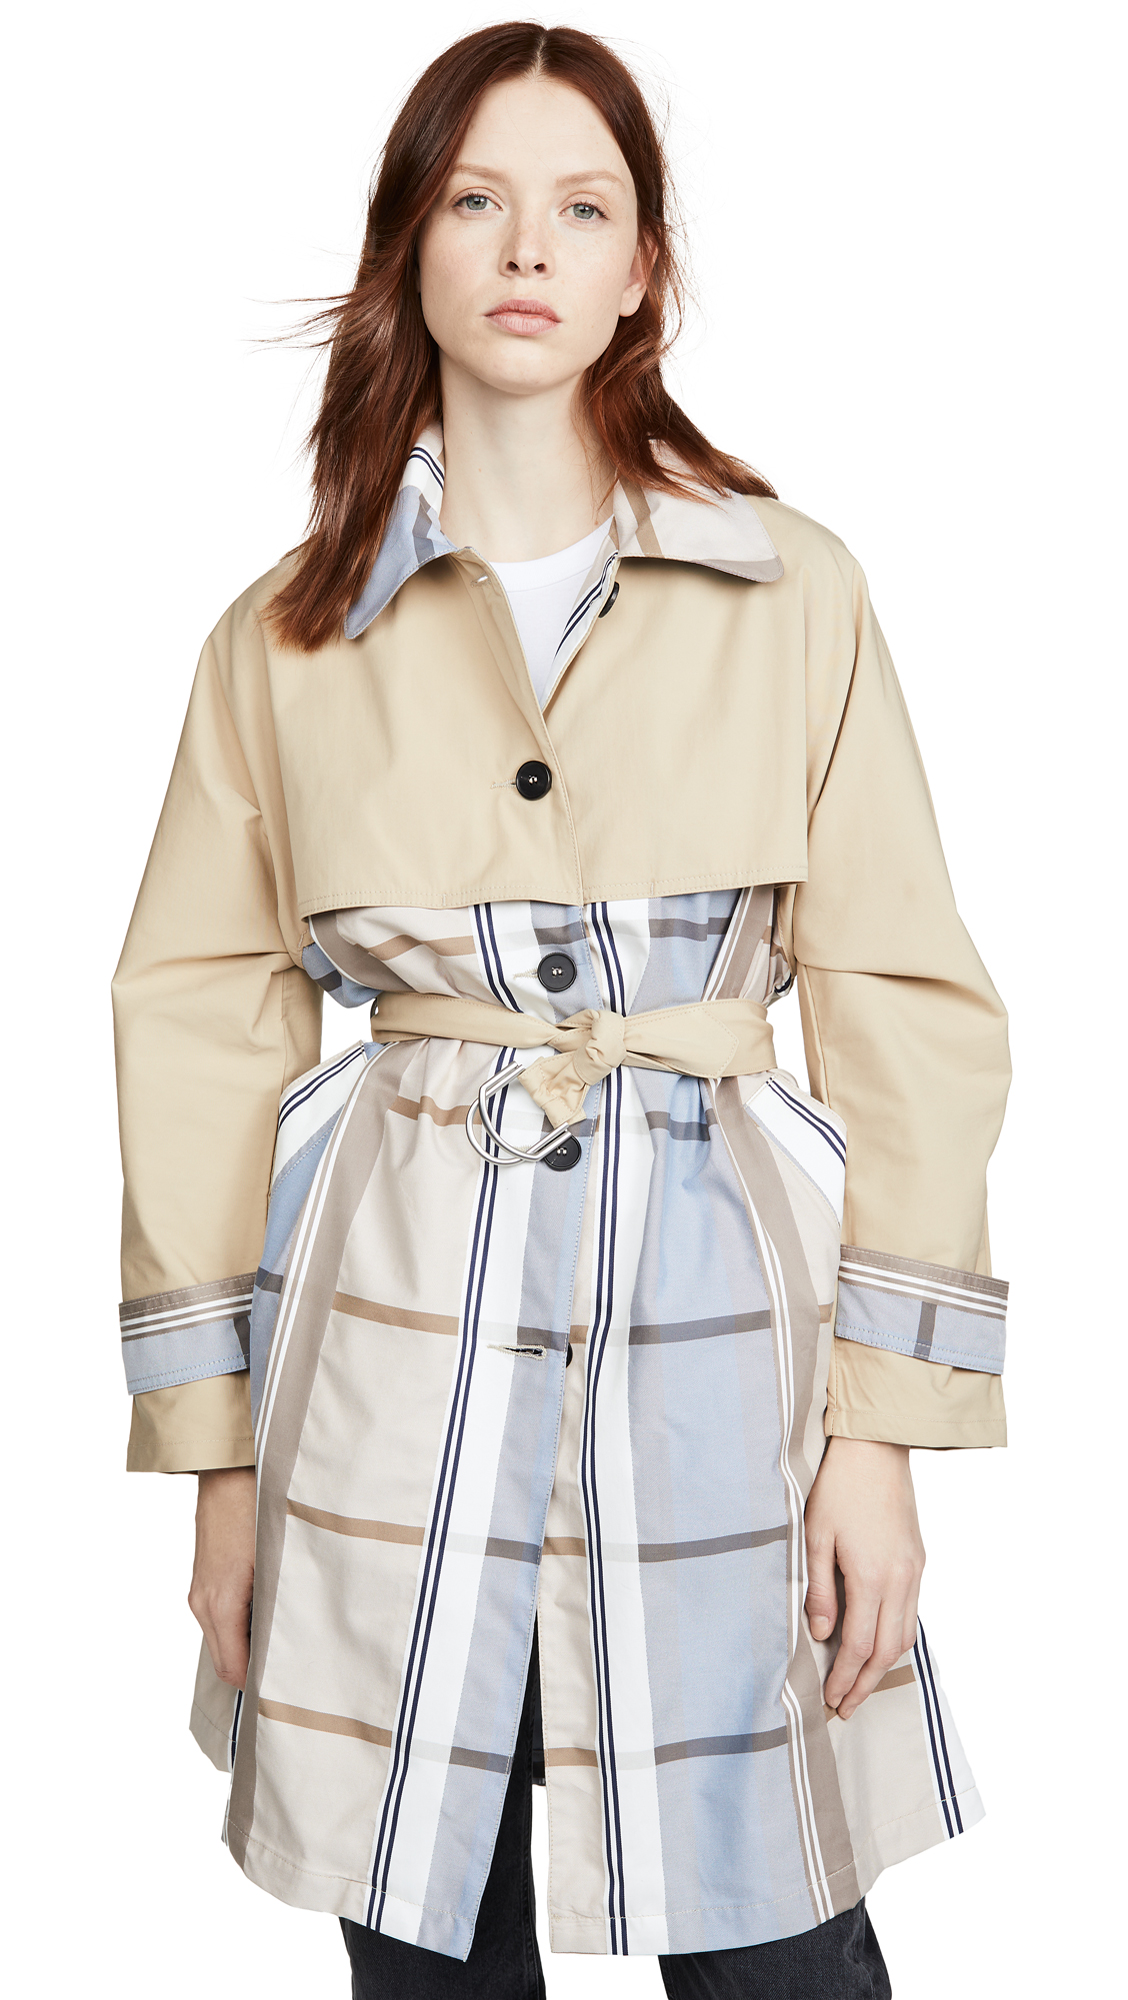 Buy ei8htdreams Roma Trench Coat online beautiful ei8htdreams Jackets, Coats, Trench Coats